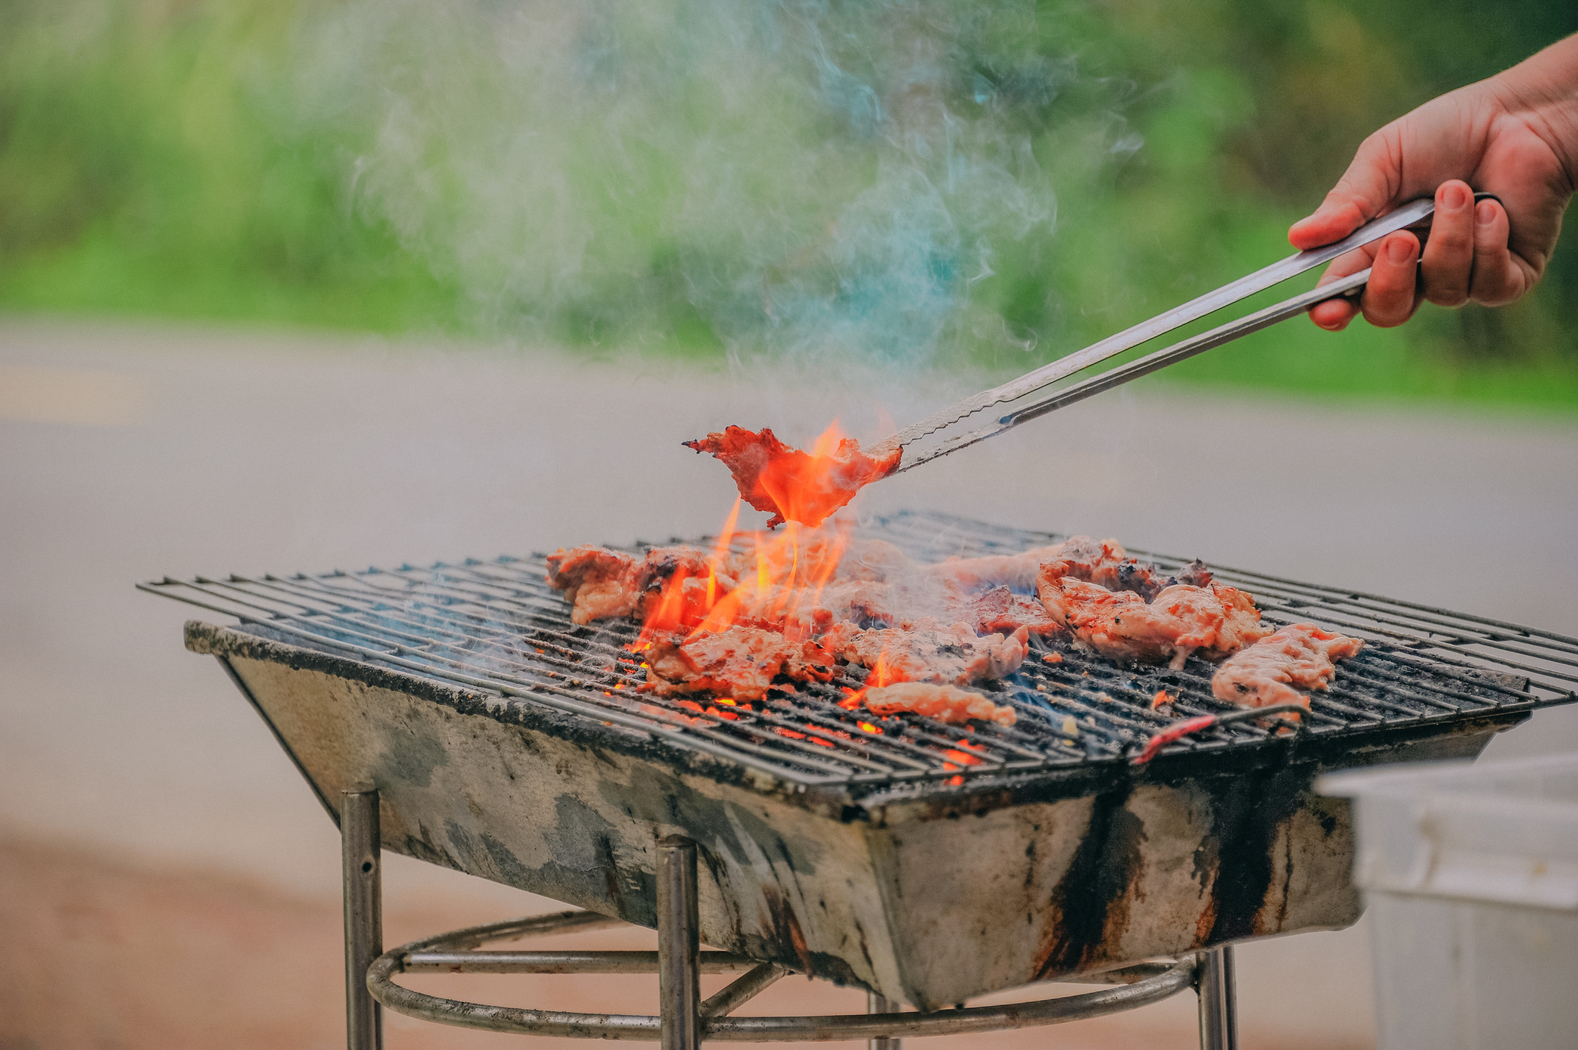 Food barbecue grilling outdoor grill